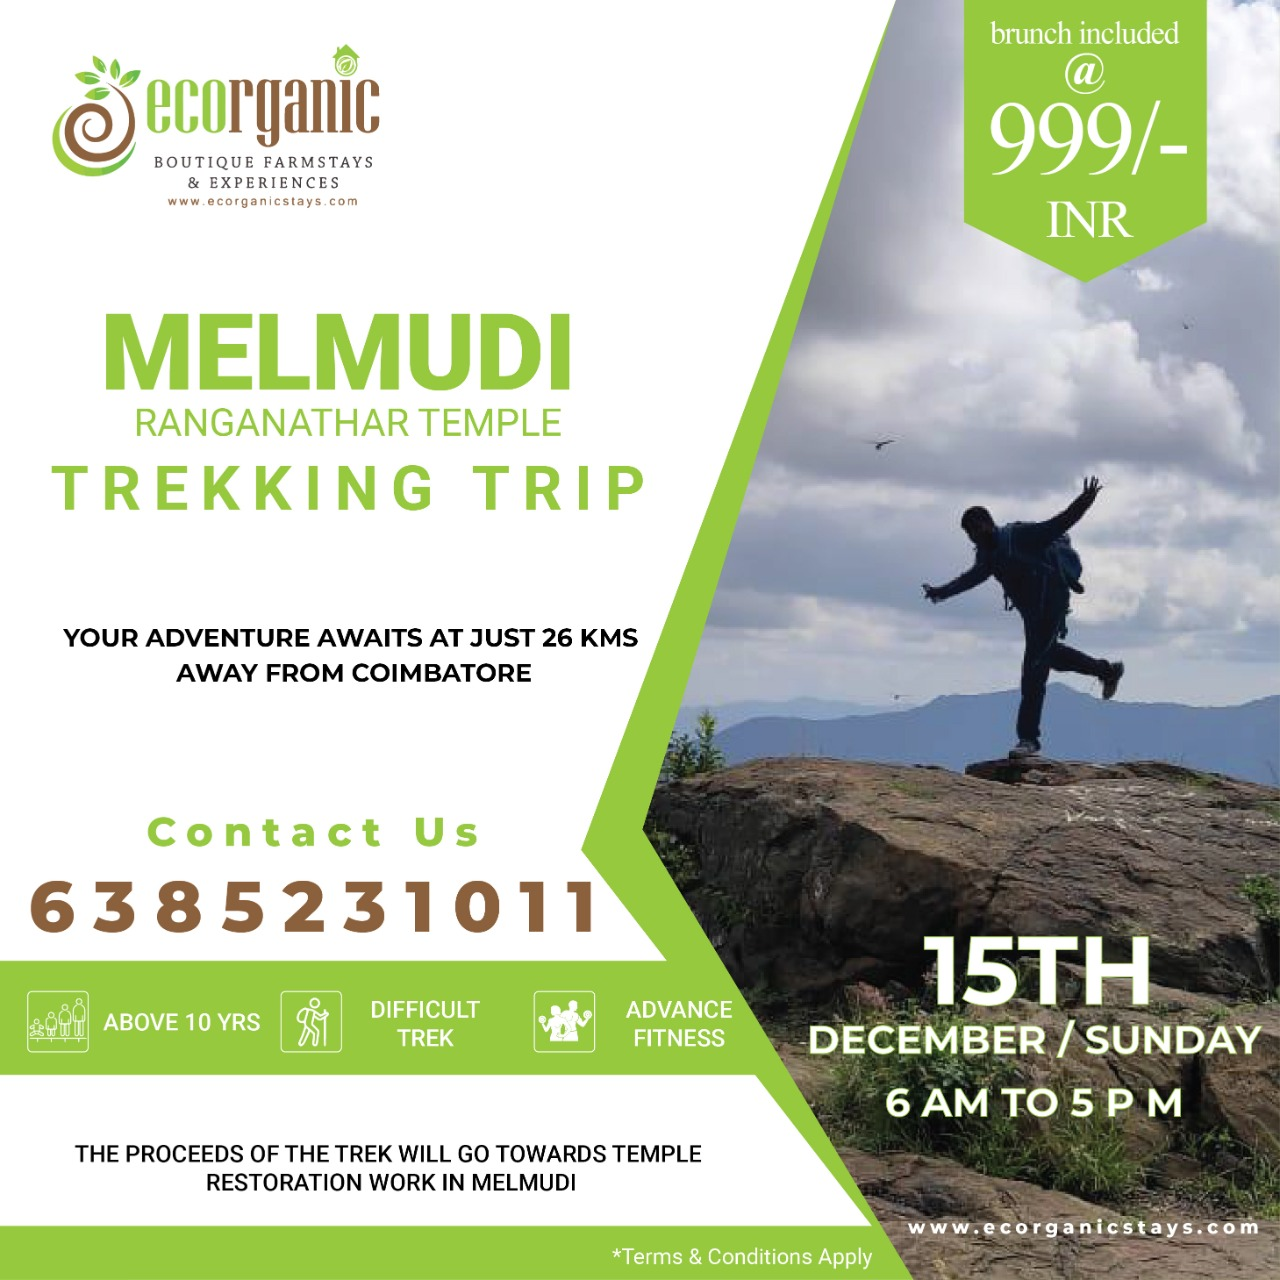 Trekking in Bangalore